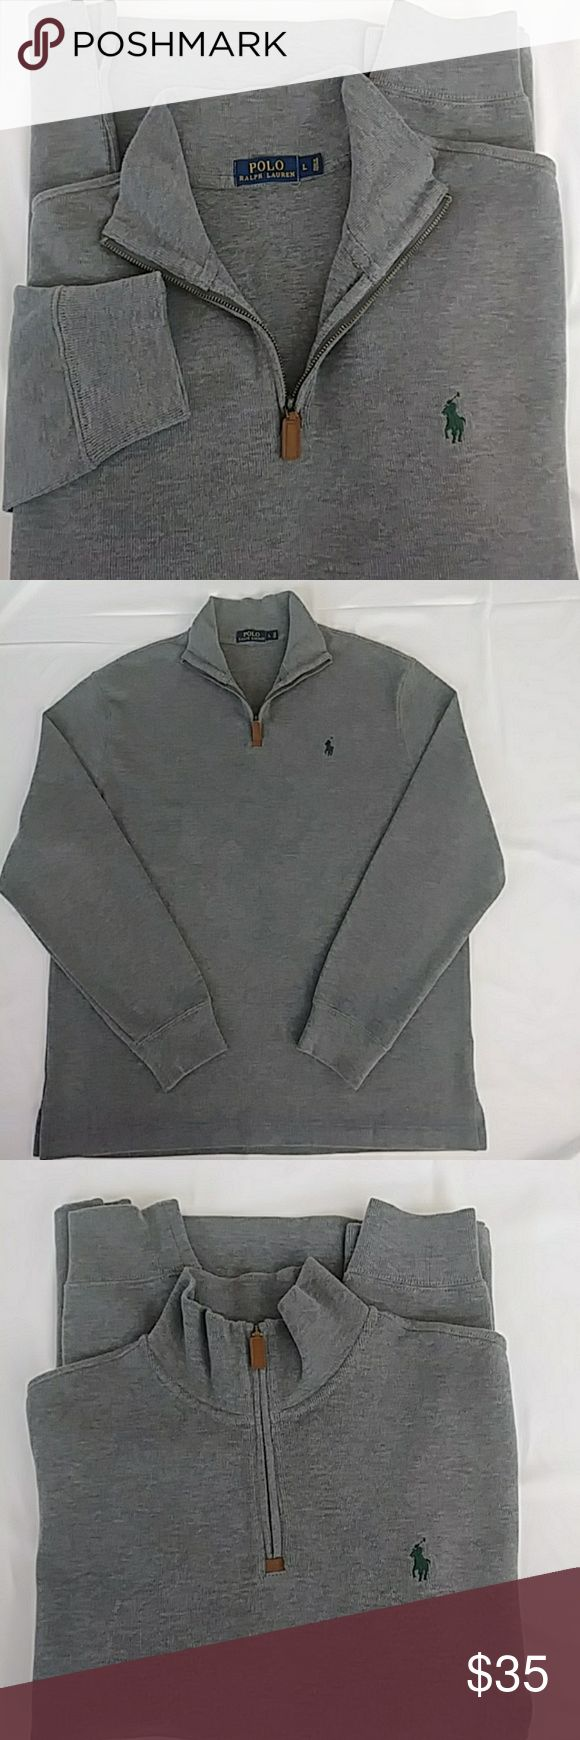 Polo Ralph Lauren Men's Half-Zip Sweater Finished with Ralph Lauren's signature embroidered pony, this jersey pullover from Polo Ralph Lauren delivers lightweight warmth with a dose of iconic style. Excellent Condition means: • No pilling • No fading • No stains • No holes, rips, or tears • No bleeding. Ralph Lauren Sweaters Zip Up